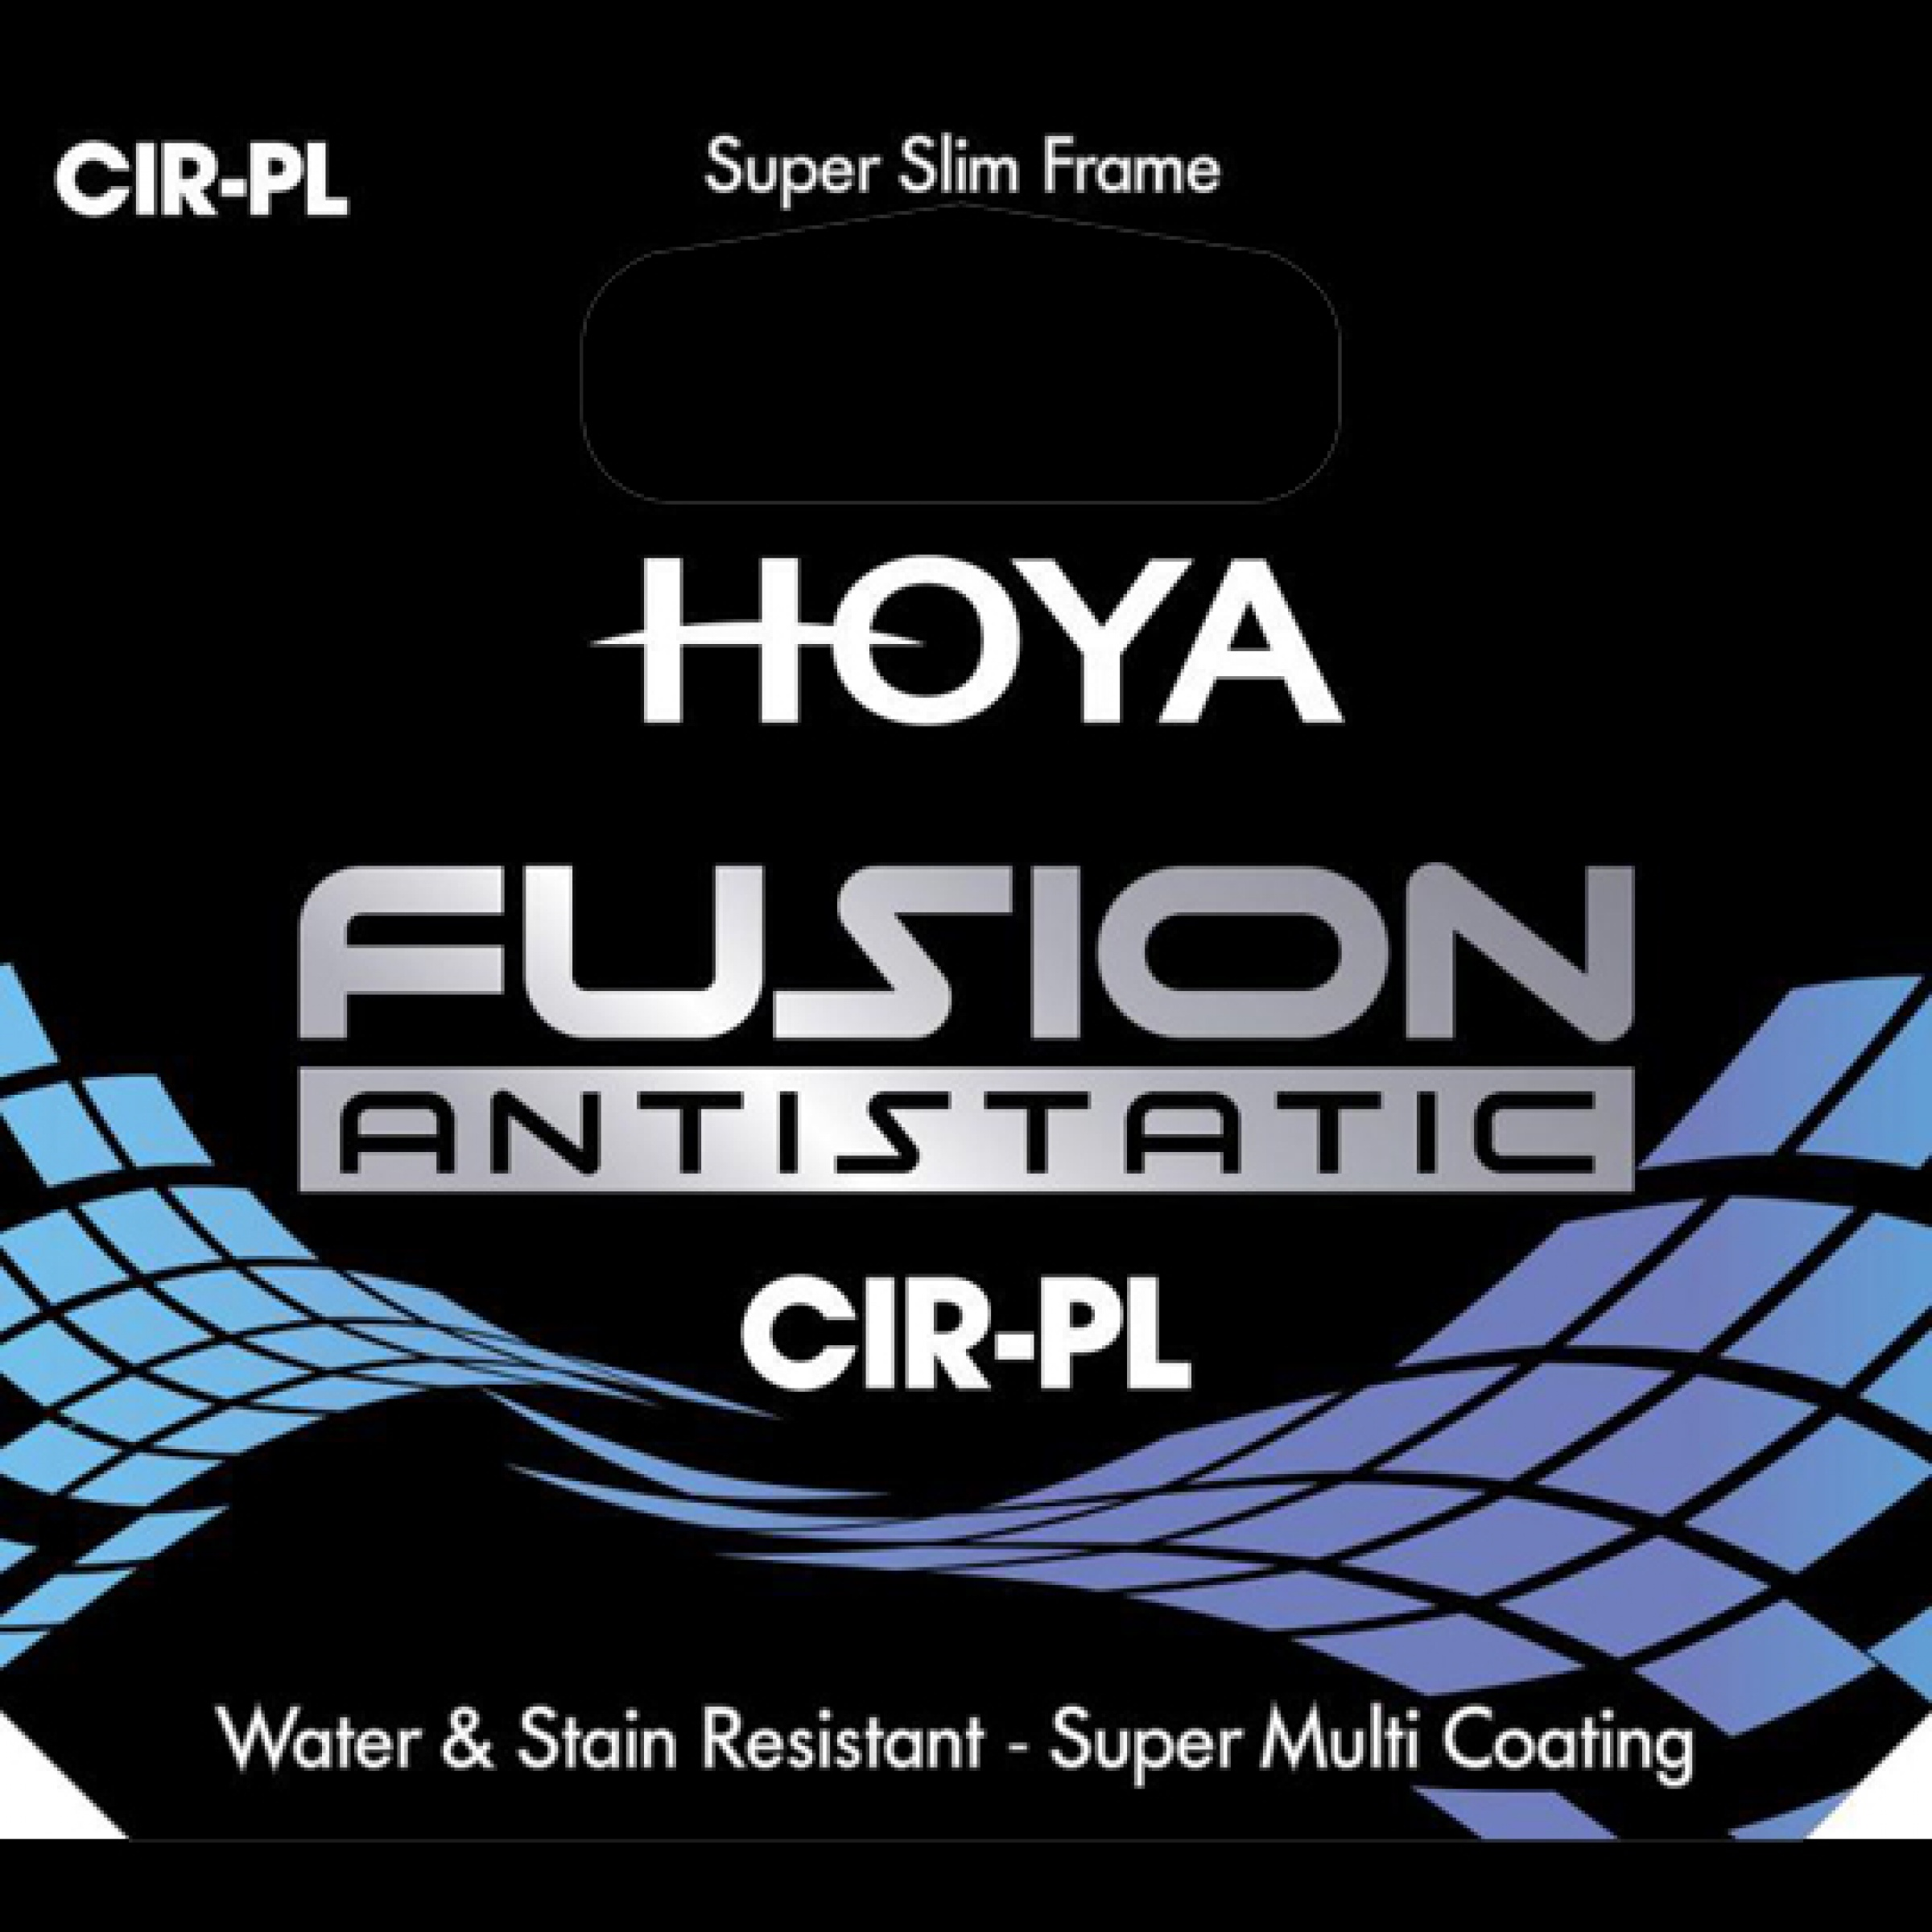 Hoya-52mm-CircPol-Fusion-Antistatic